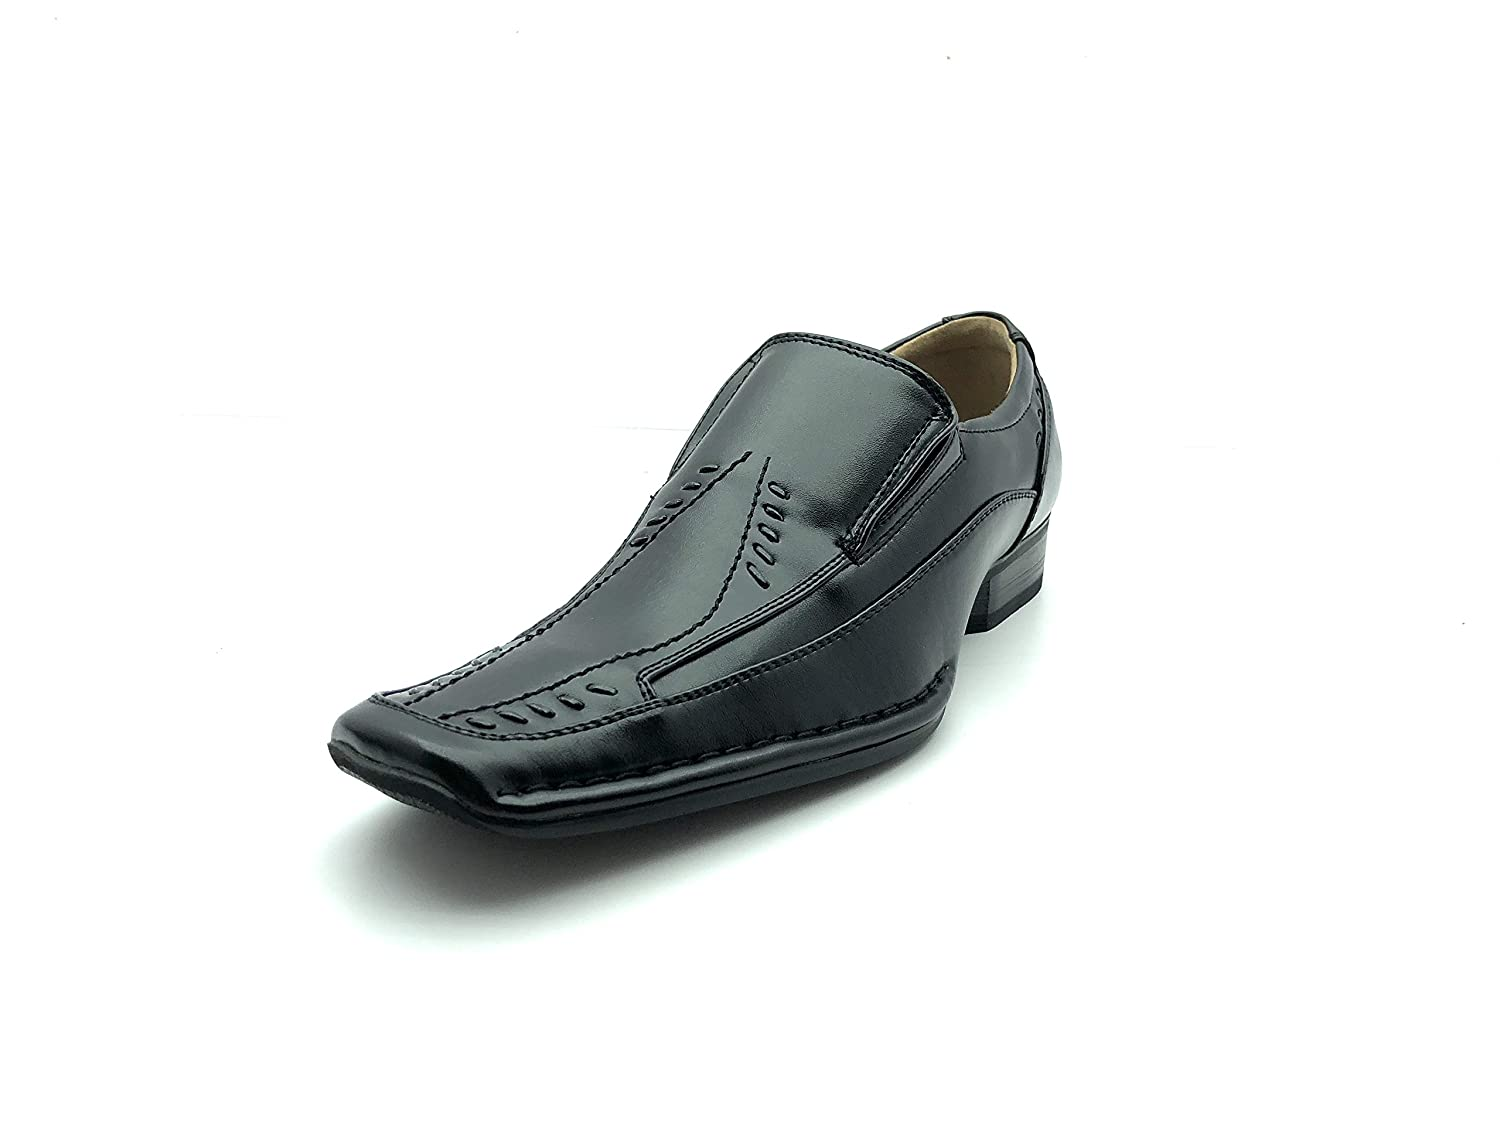 Majestic Men's 88212 Classic Squared Toe Loafers Dress Shoes8